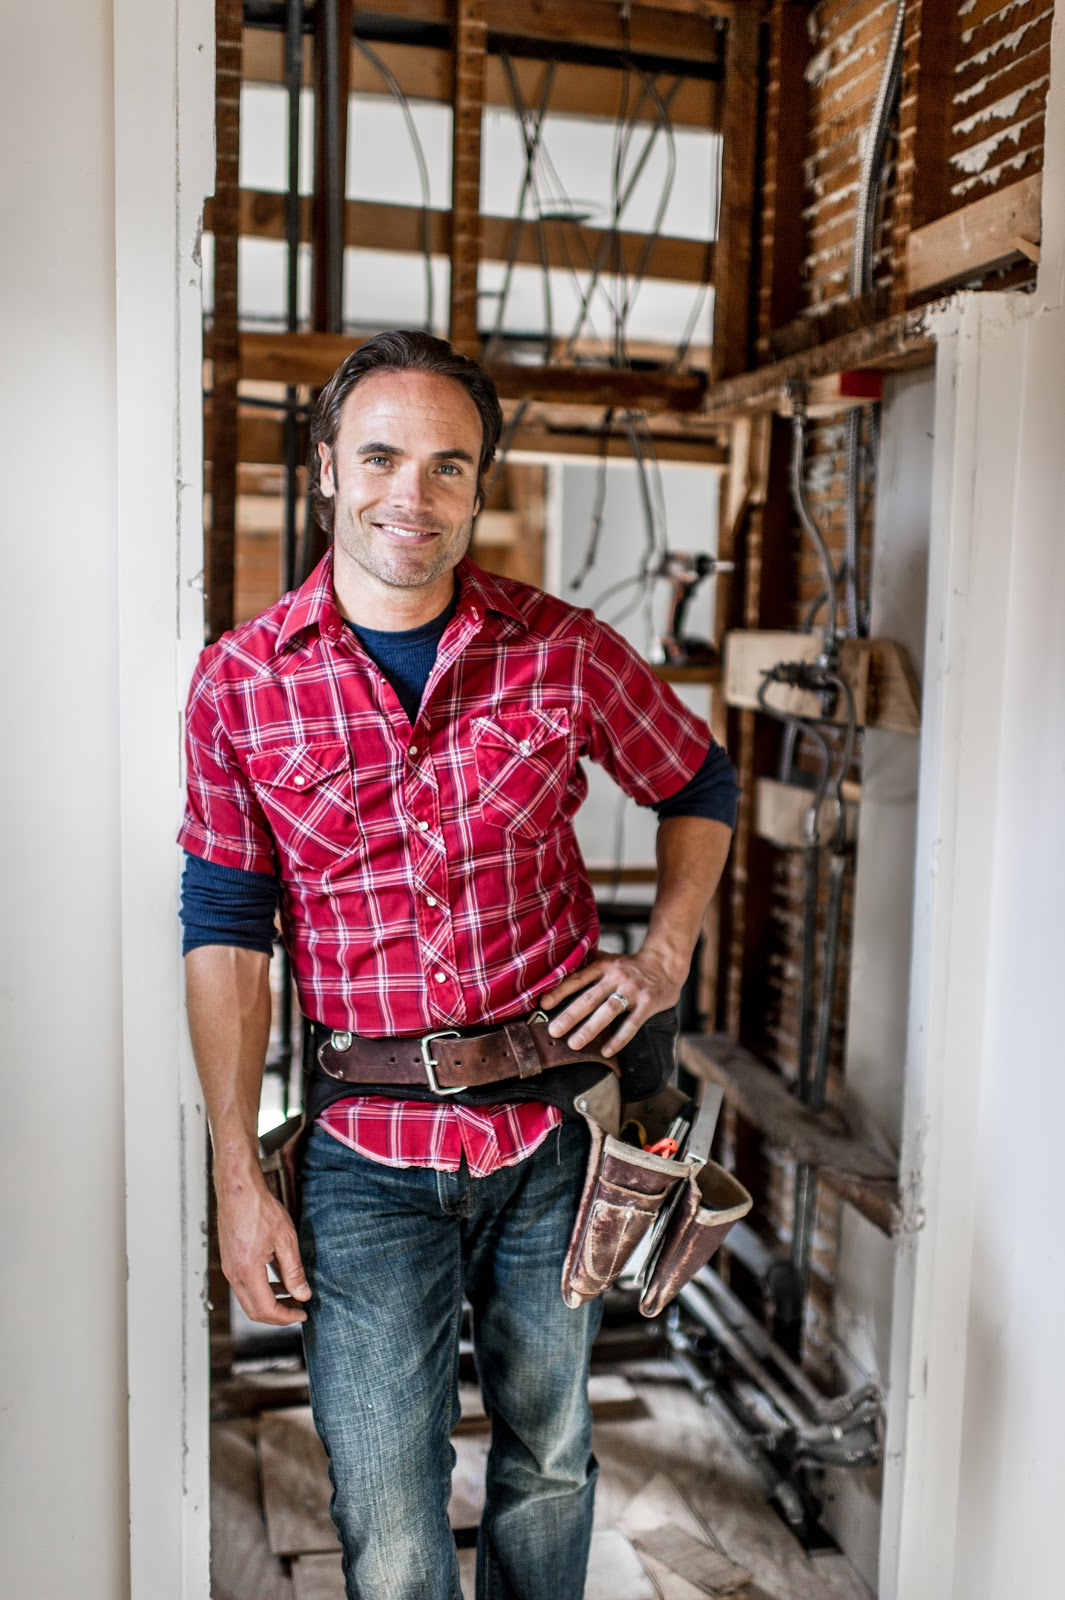 Acres of DIY ideas to be offered at Philadelphia Home and Garden Show in Oaks